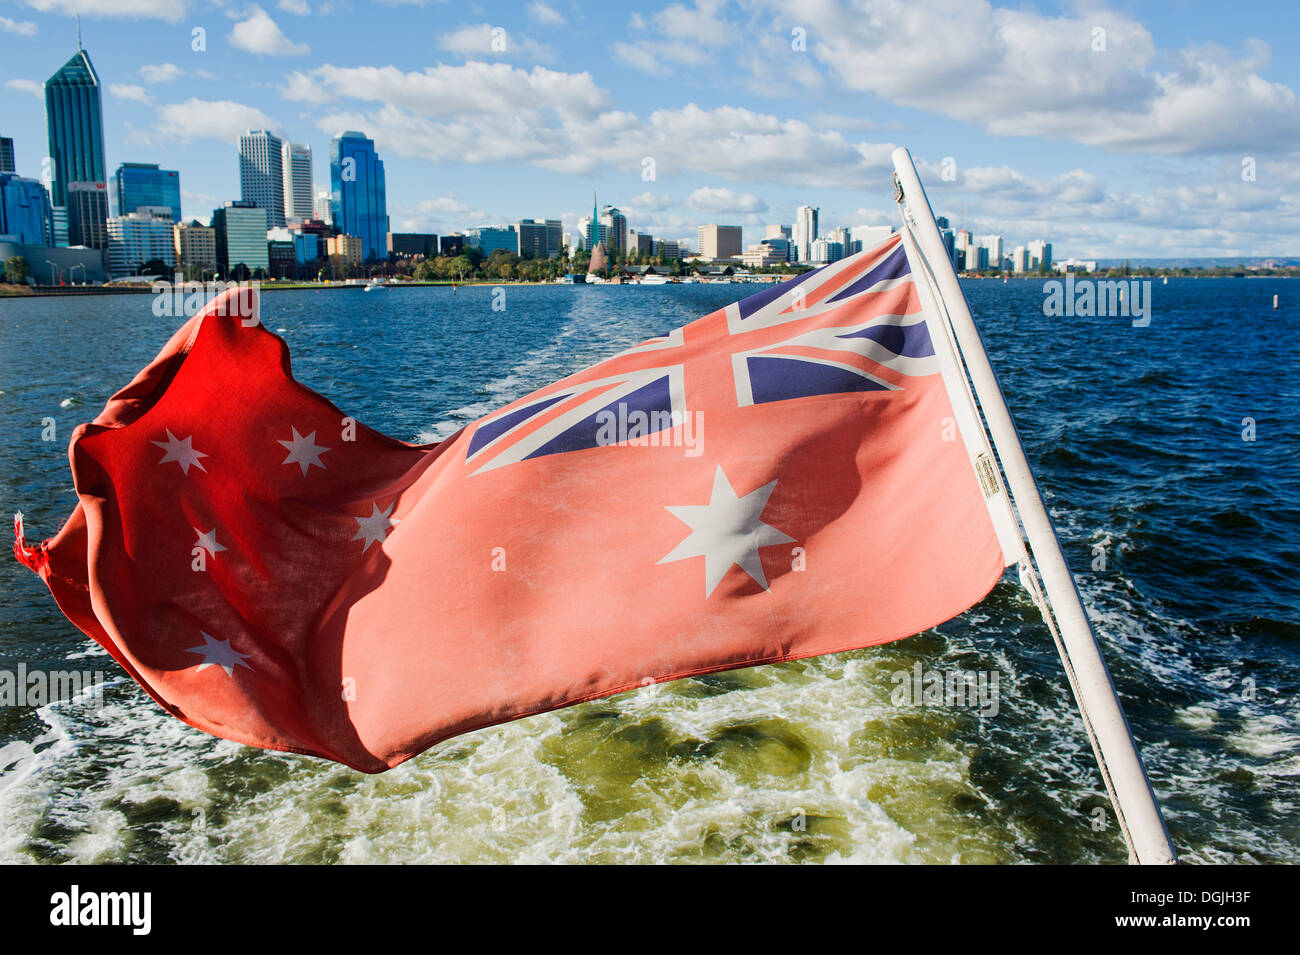 The Australian Red Ensign flown on a boat as it departs the city of Perth. - Stock Image